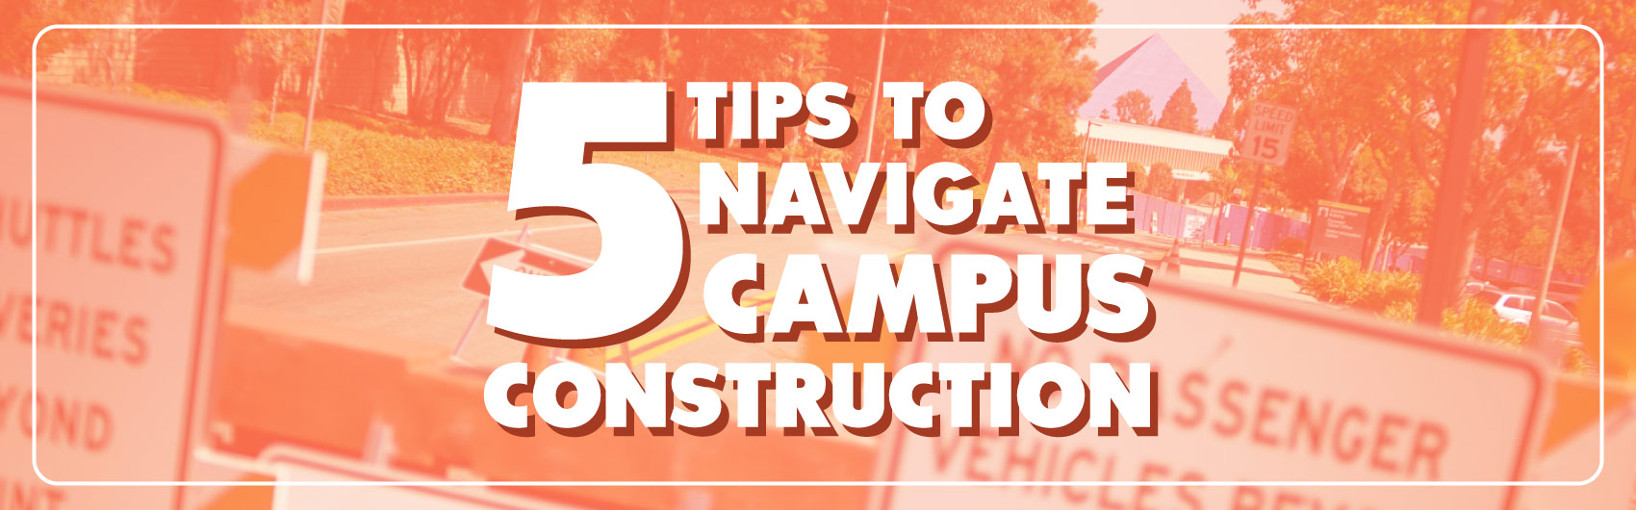 5 Tips for Navigating Campus Construction banner